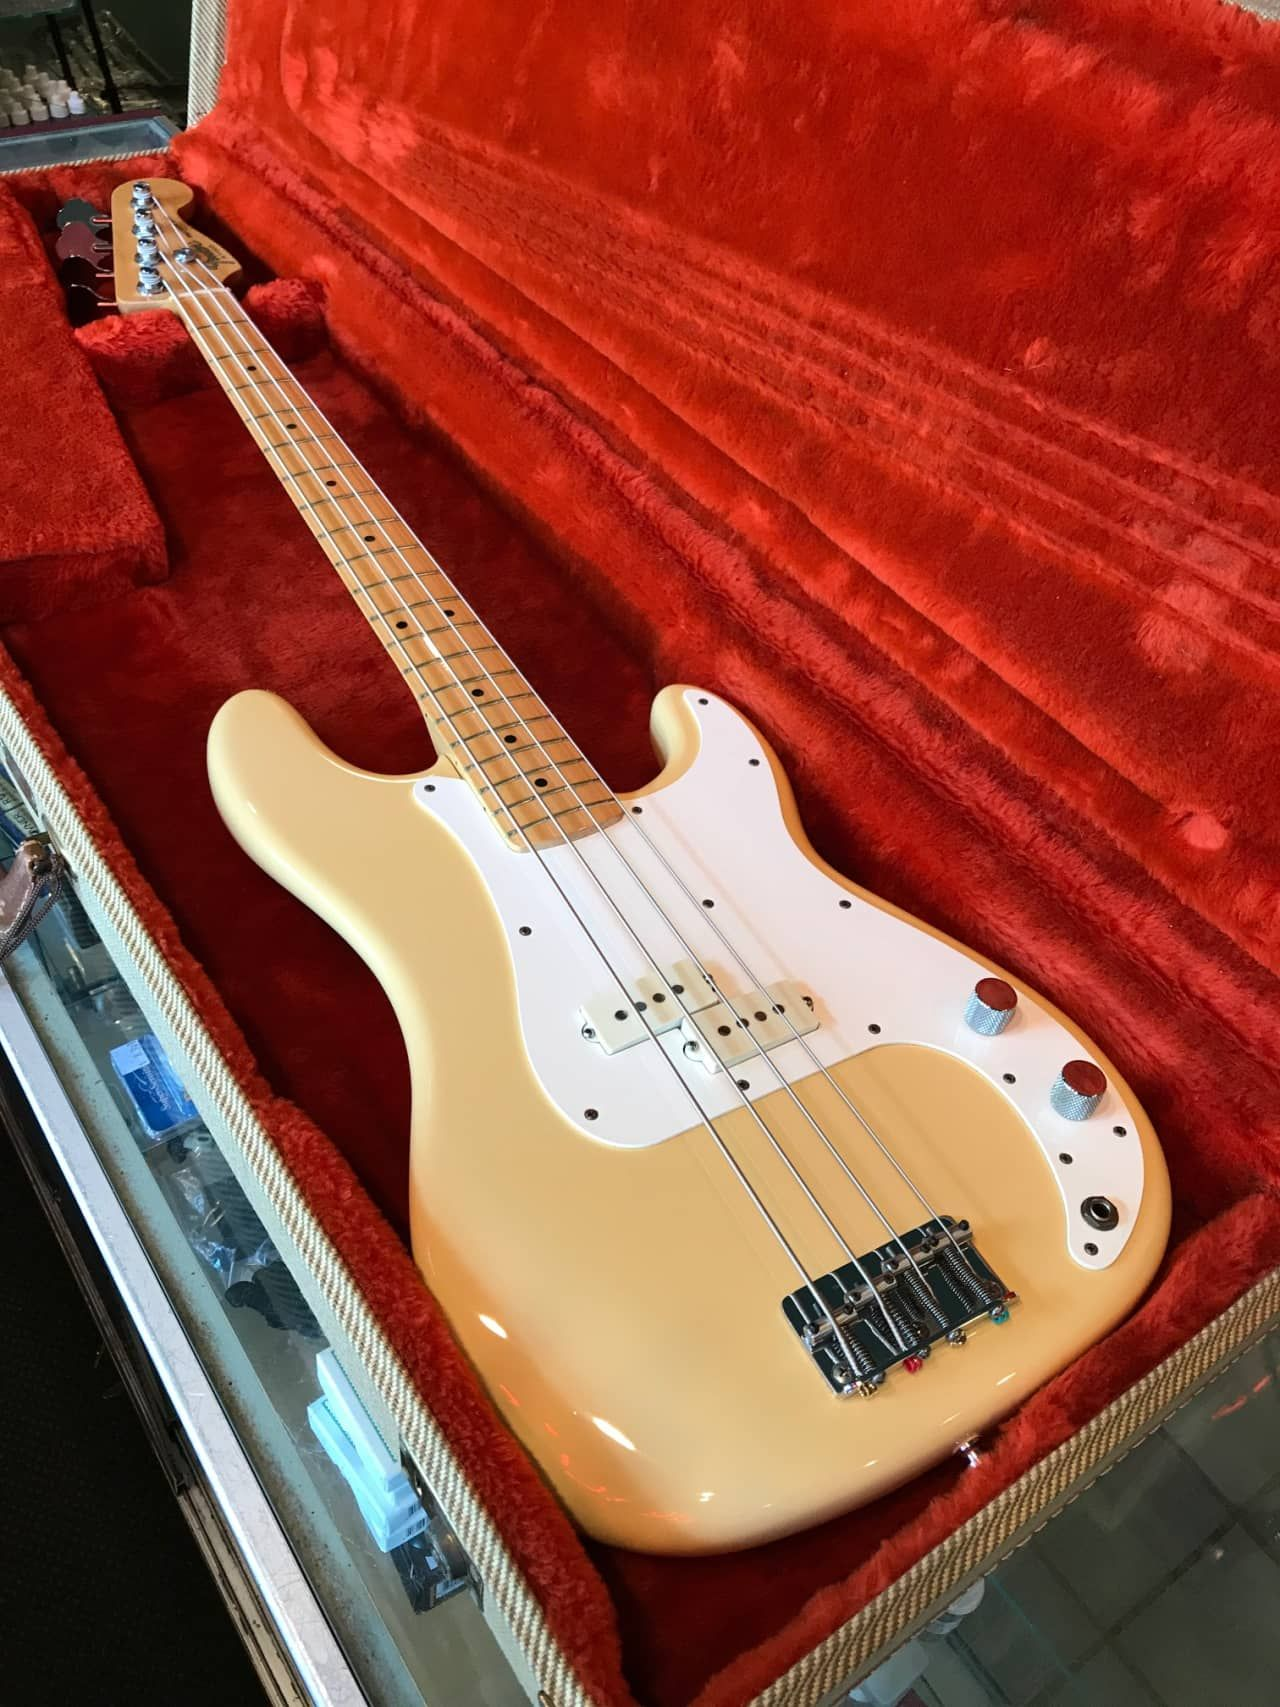 vintage 1983 usa fender p bass cream precision bass in excellent condition this cool instrument is american made alder body maple neck cream finish  [ 1280 x 1707 Pixel ]